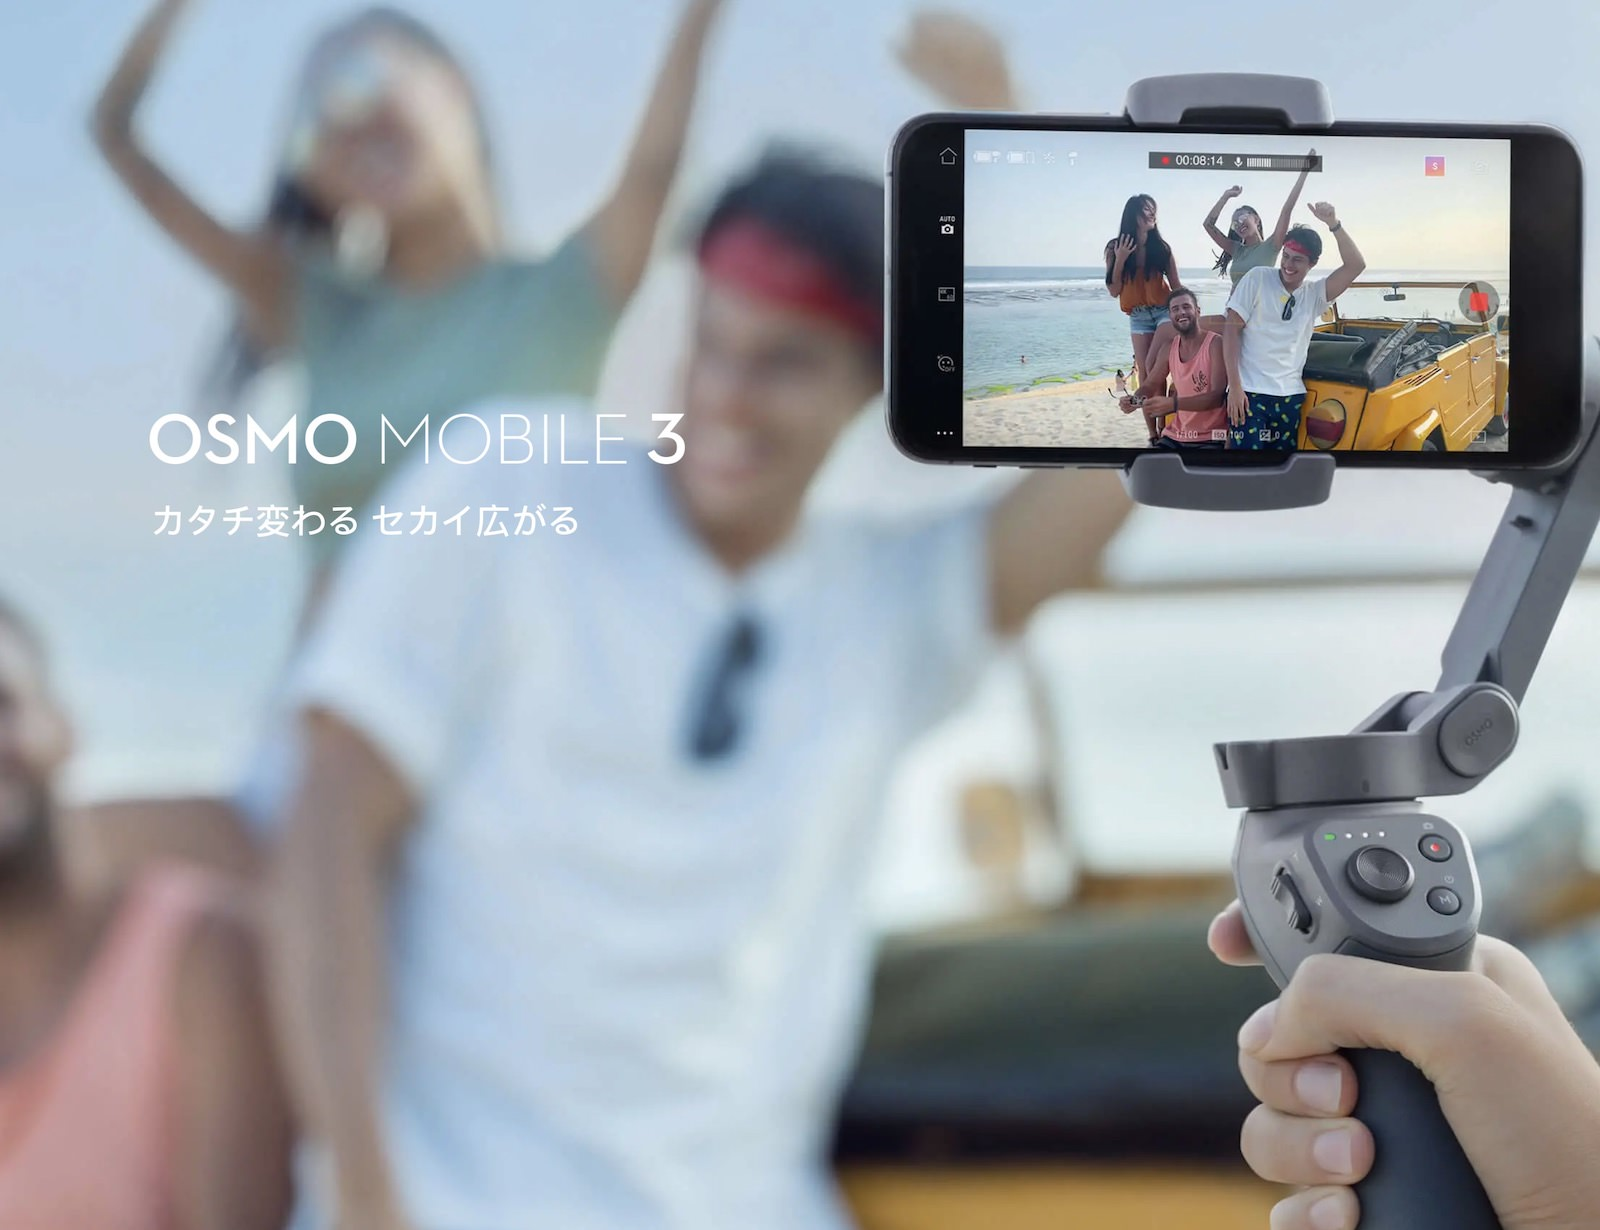 DJI Osmo Mobile 3 on sale